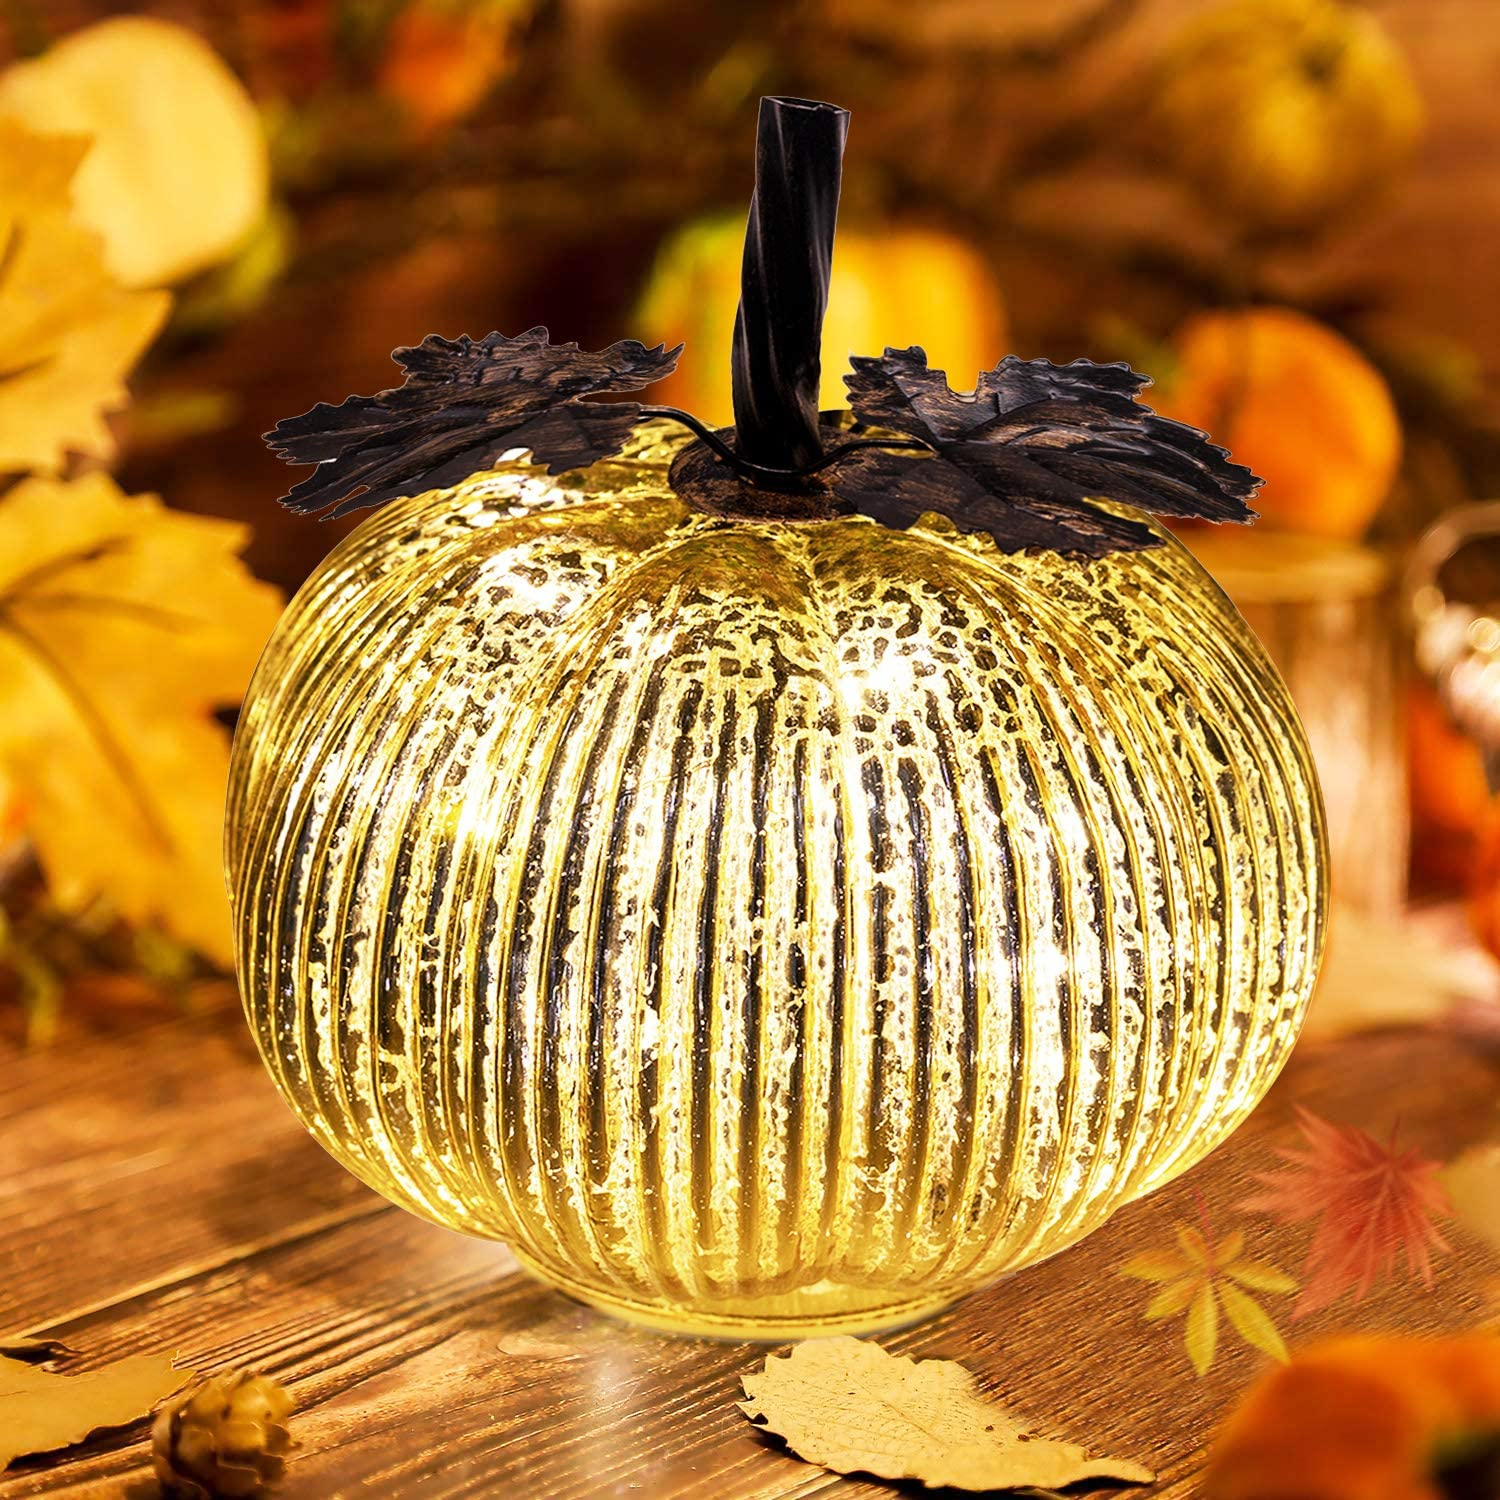 Keepax Mercury Glass Pumpkin Lights Fall Decor, Battery Operated LED Timer 5.5 Inches Pumpkins Décor (Gold)